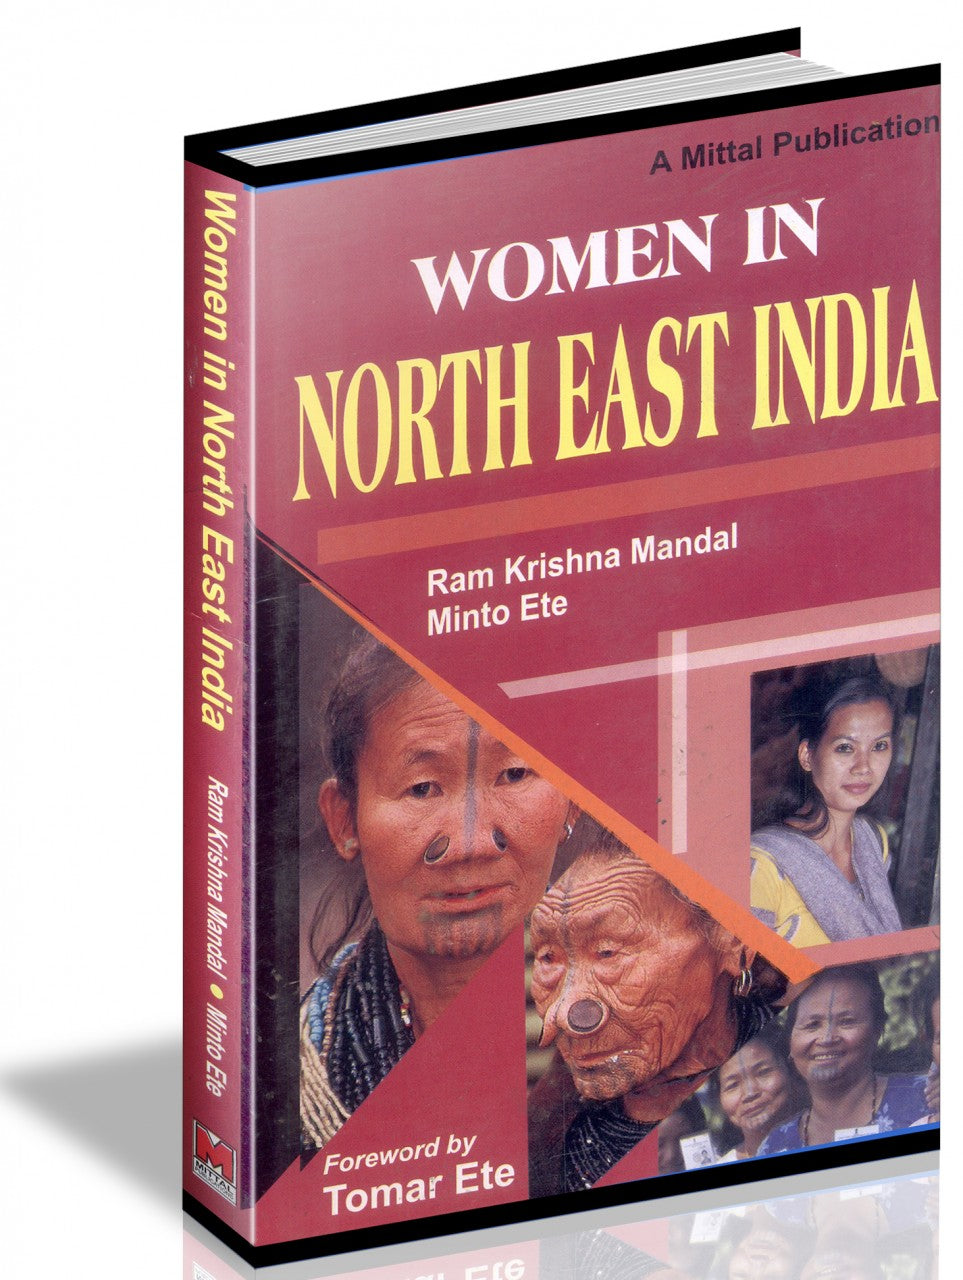 Women in North East India